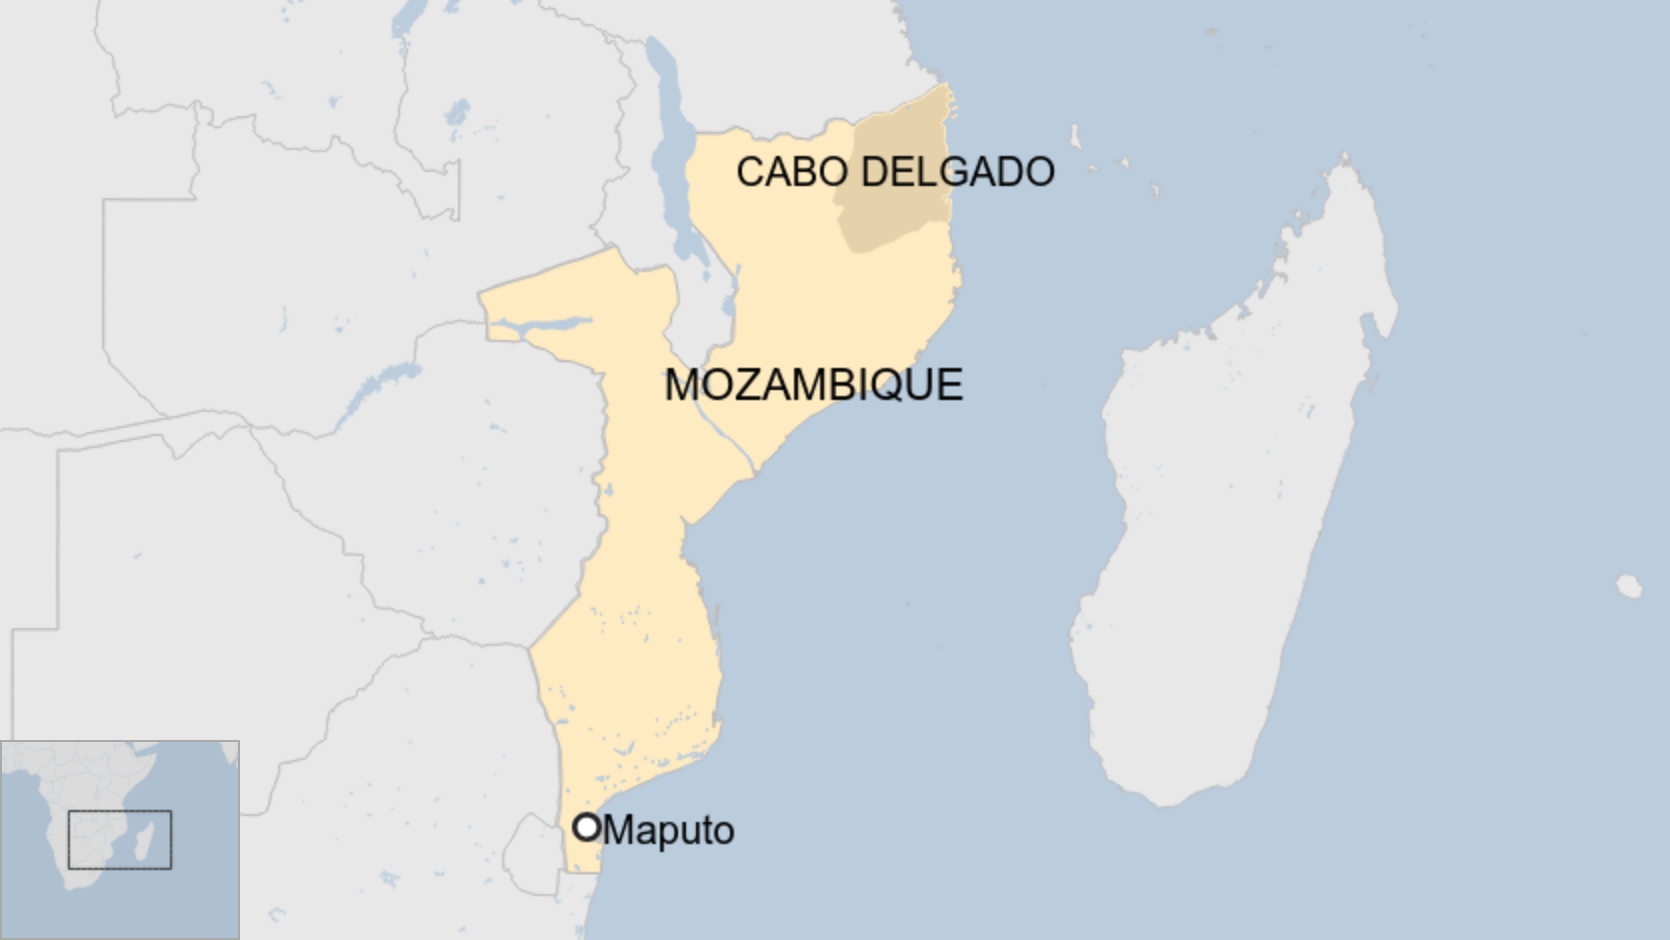 ISIS-Aligned Militants Behead 50 People, Abduct Dozens, and Burn Down Homes in Mozambique Attacks